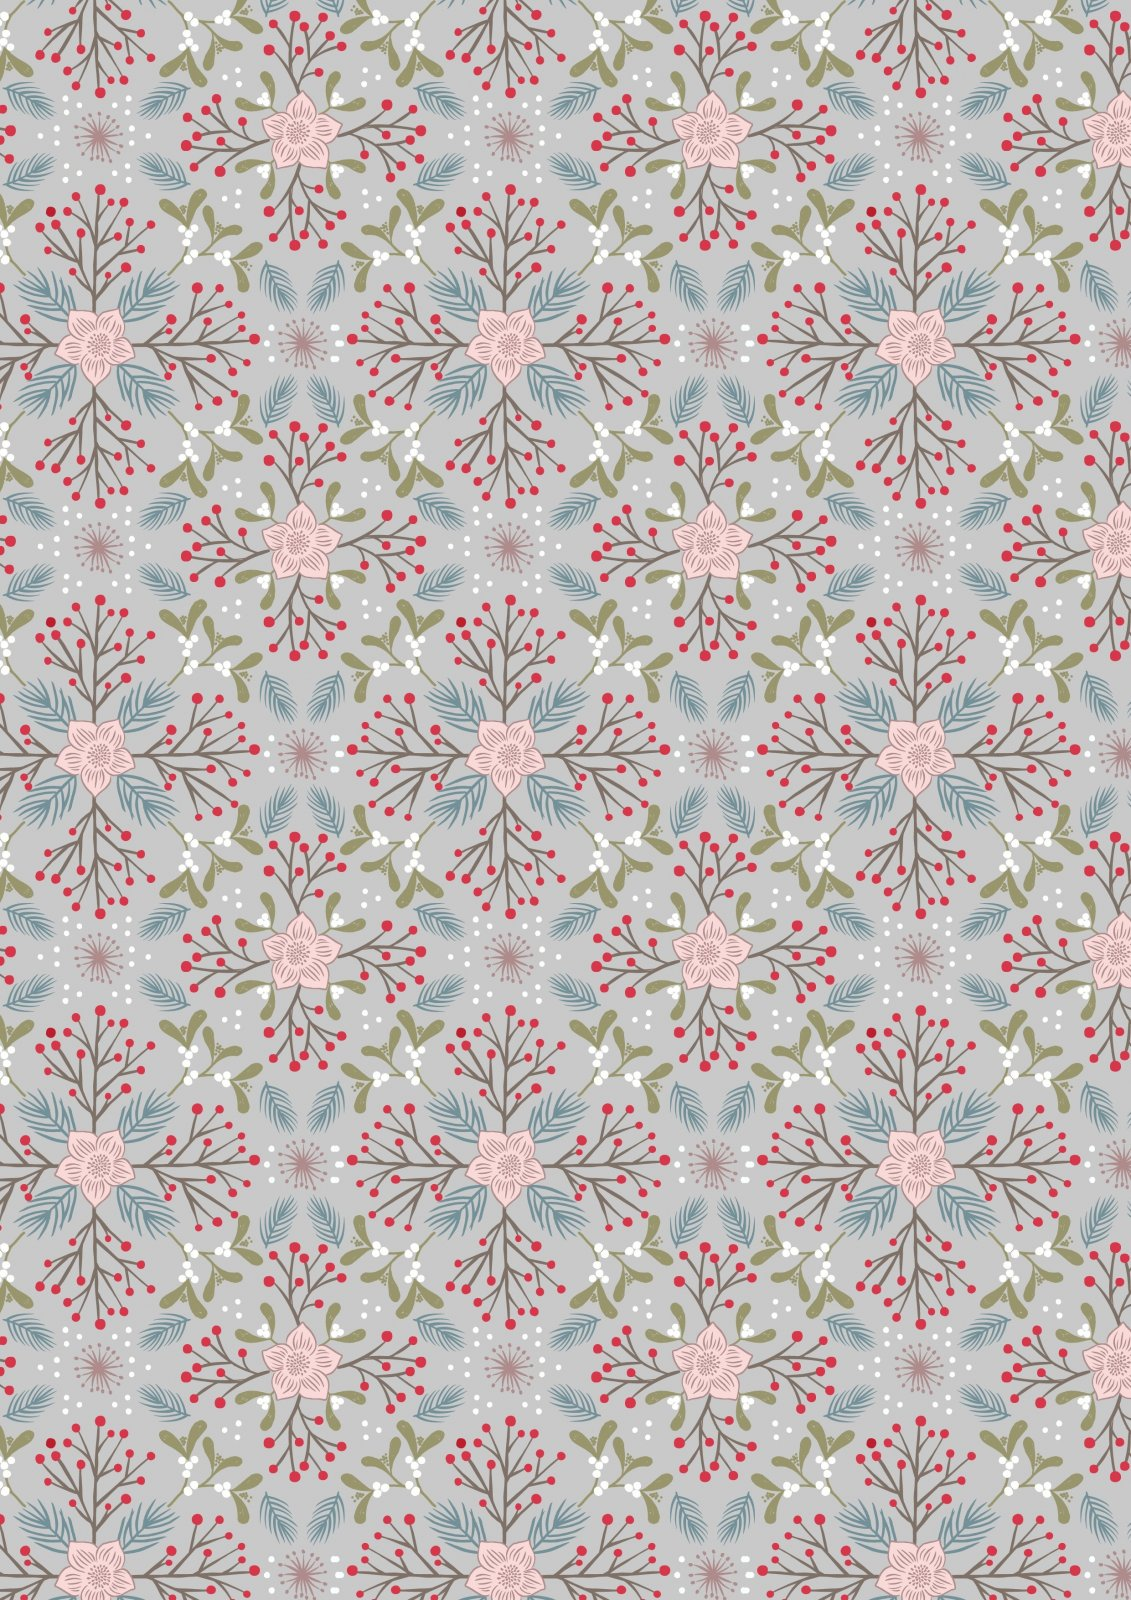 Grey Winter Floral - Winter in Bluebell Wood - Lewis & Irene - LEIC45-2